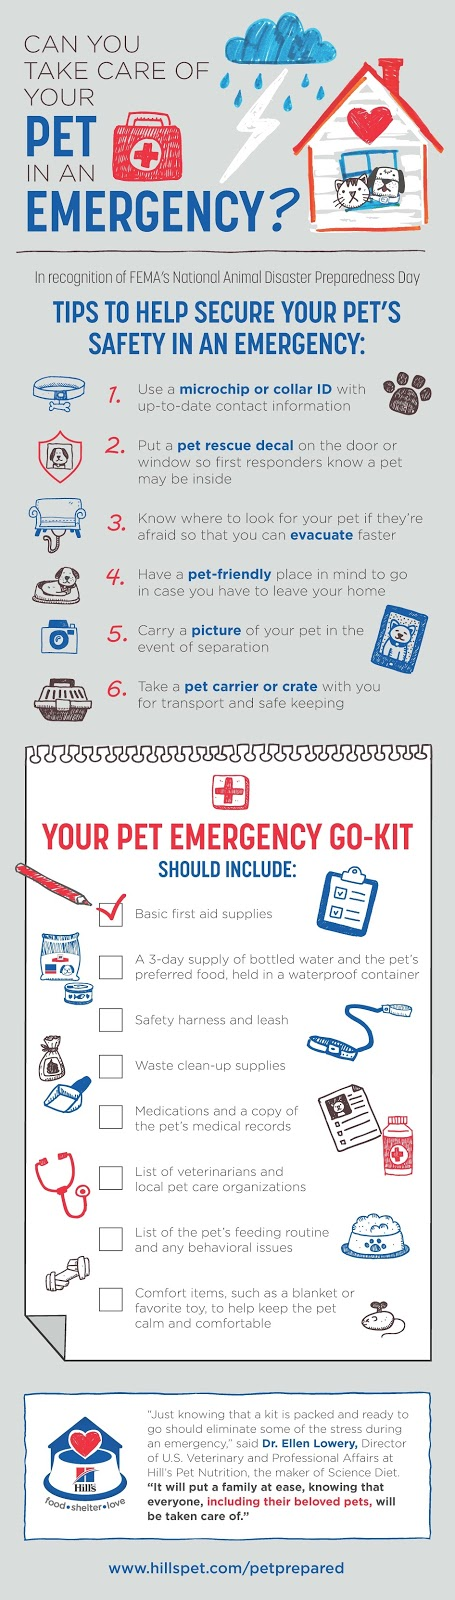 #PetPrepared Pet Safety Tips from @HillsPet #sponsored